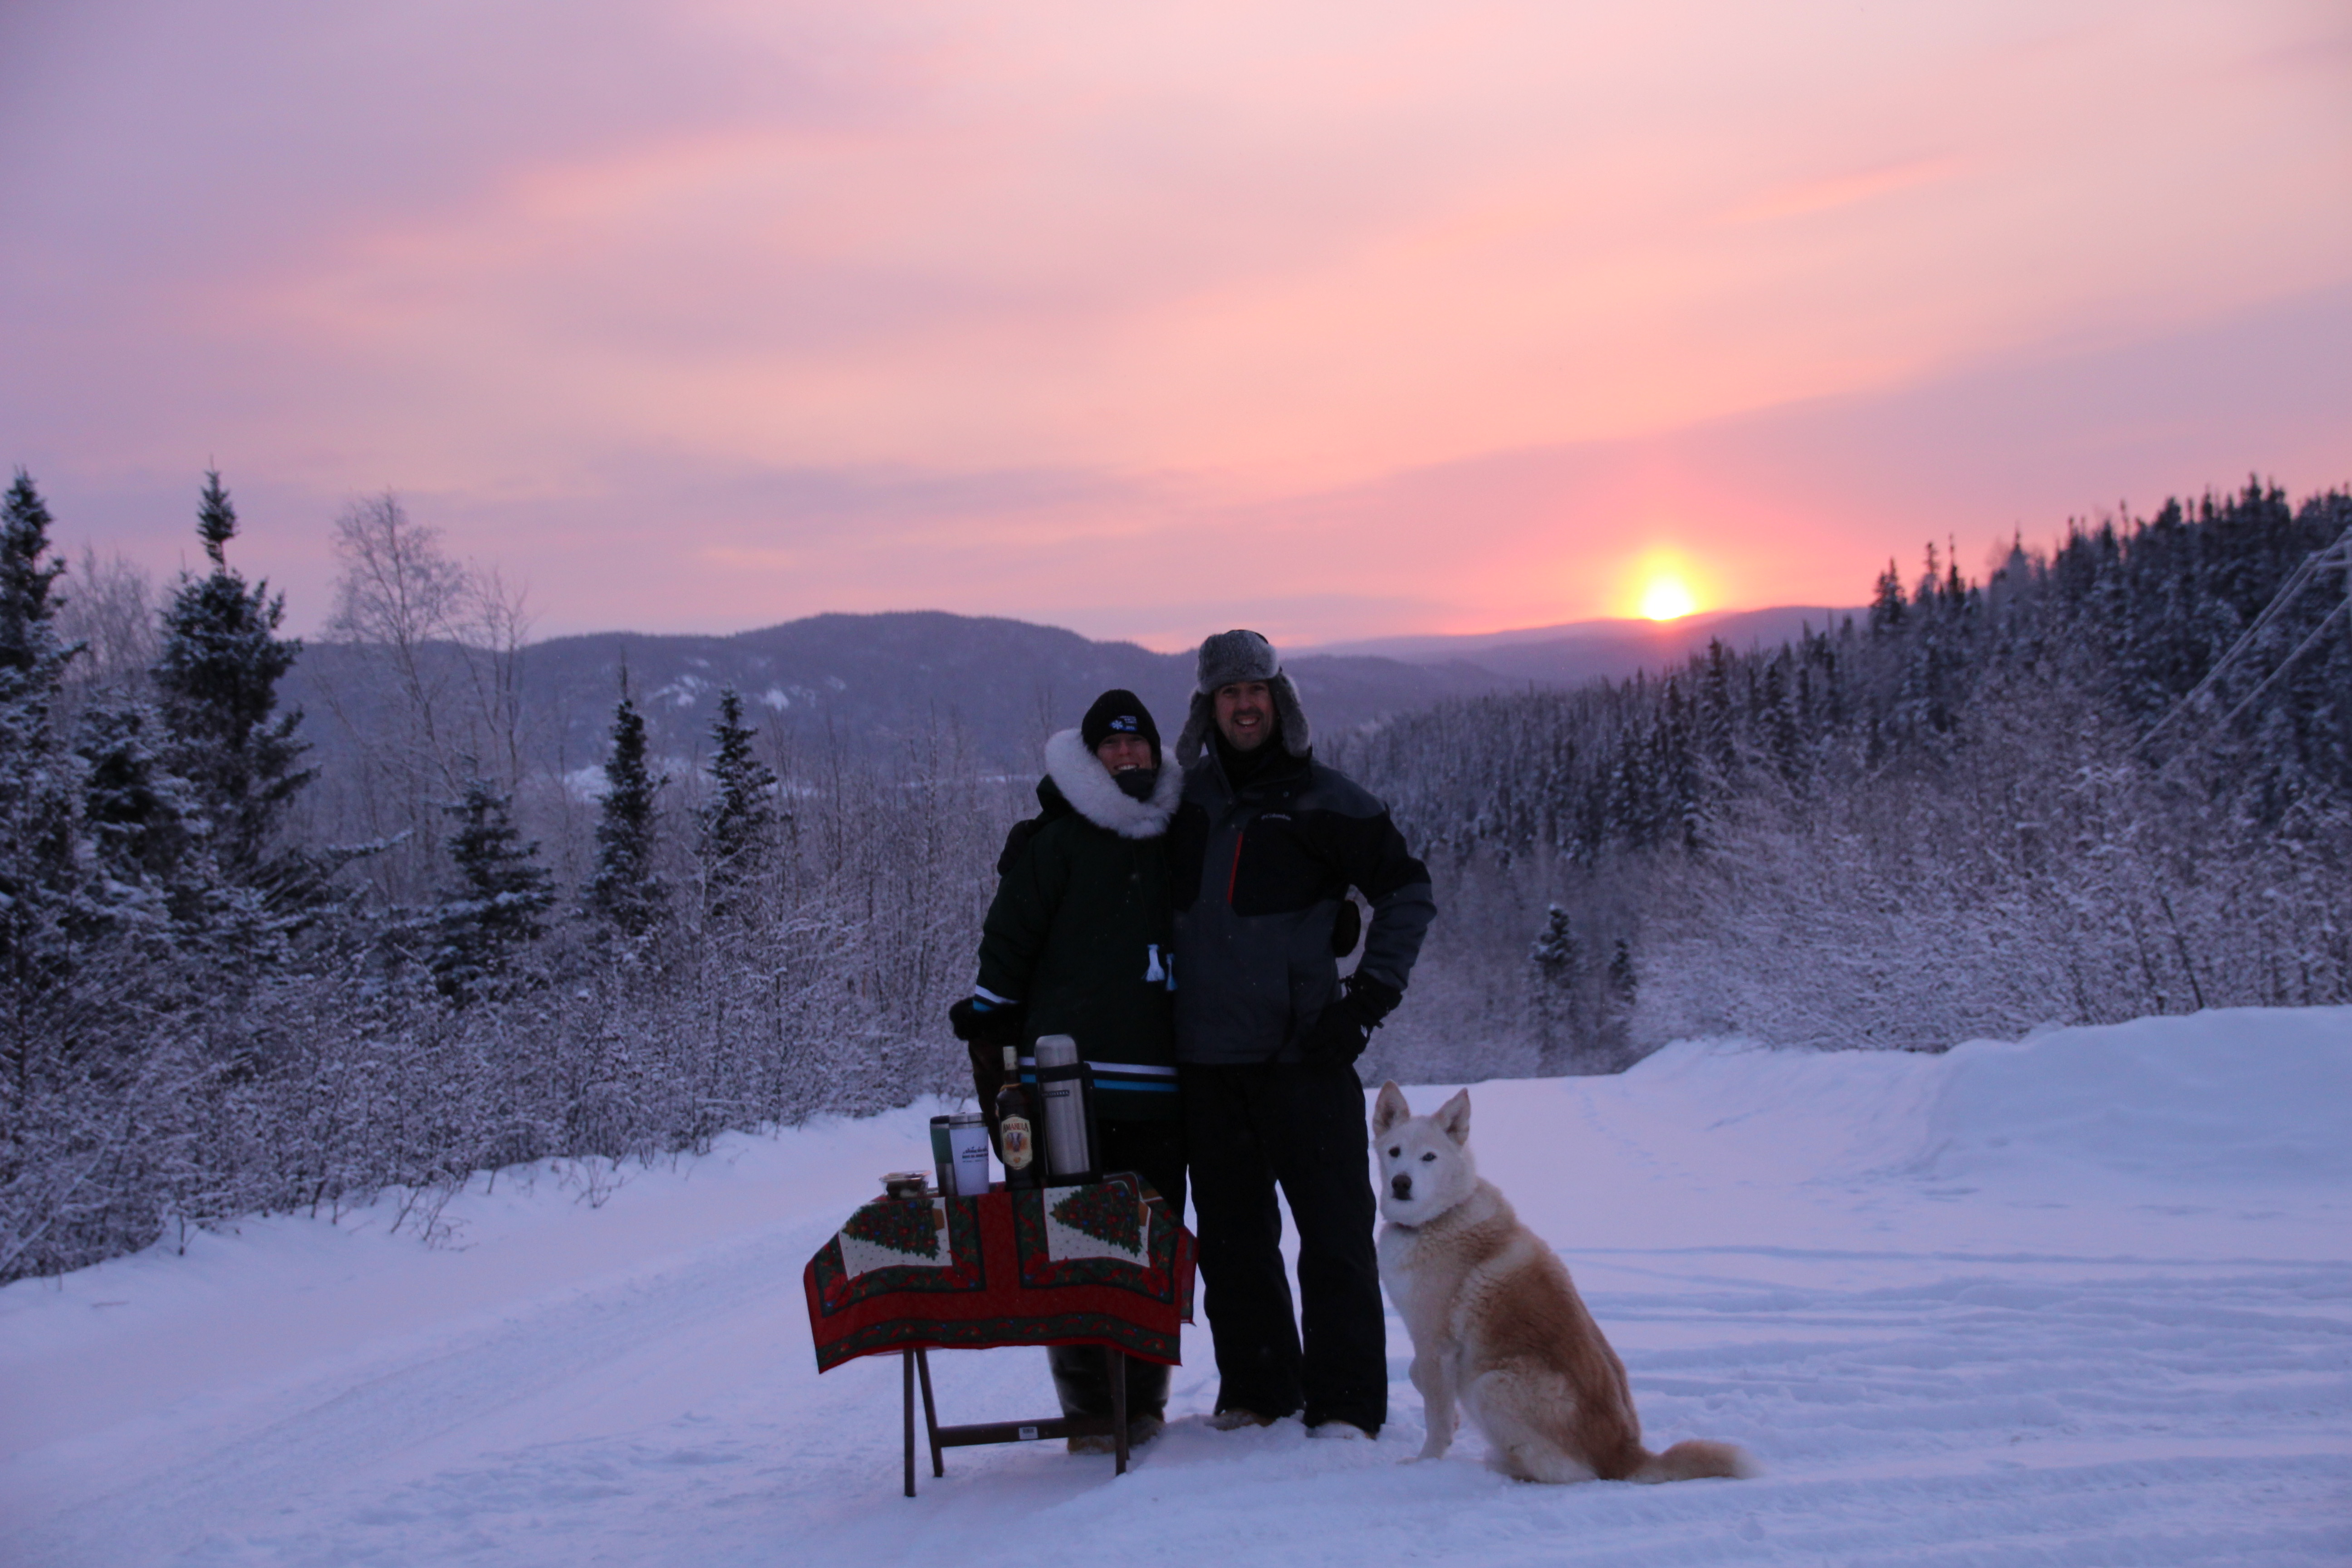 sundowners in Labrador, Canada